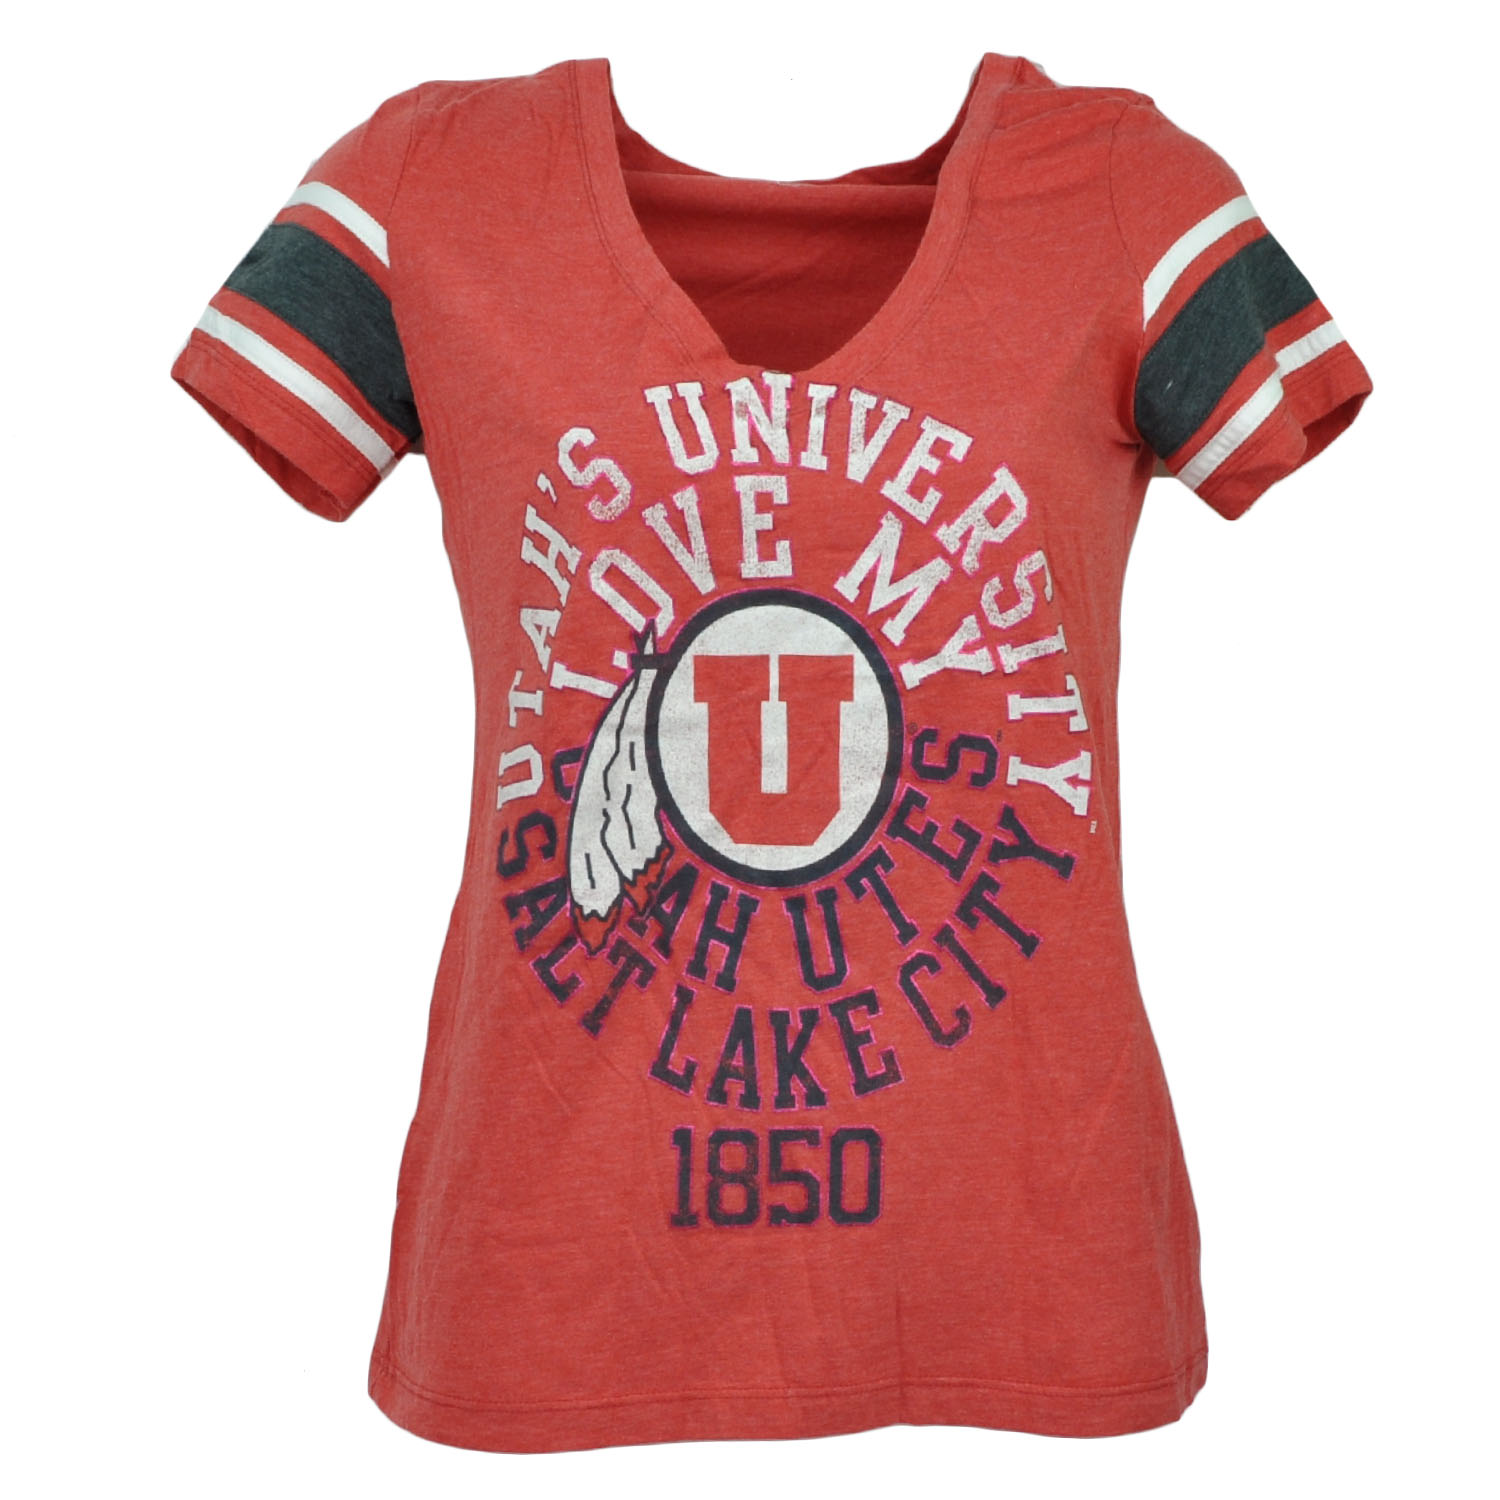 NCAA Utah Utes V Neck Striped Short Sleeve Red Tshirt Tee Womens Sports Medium